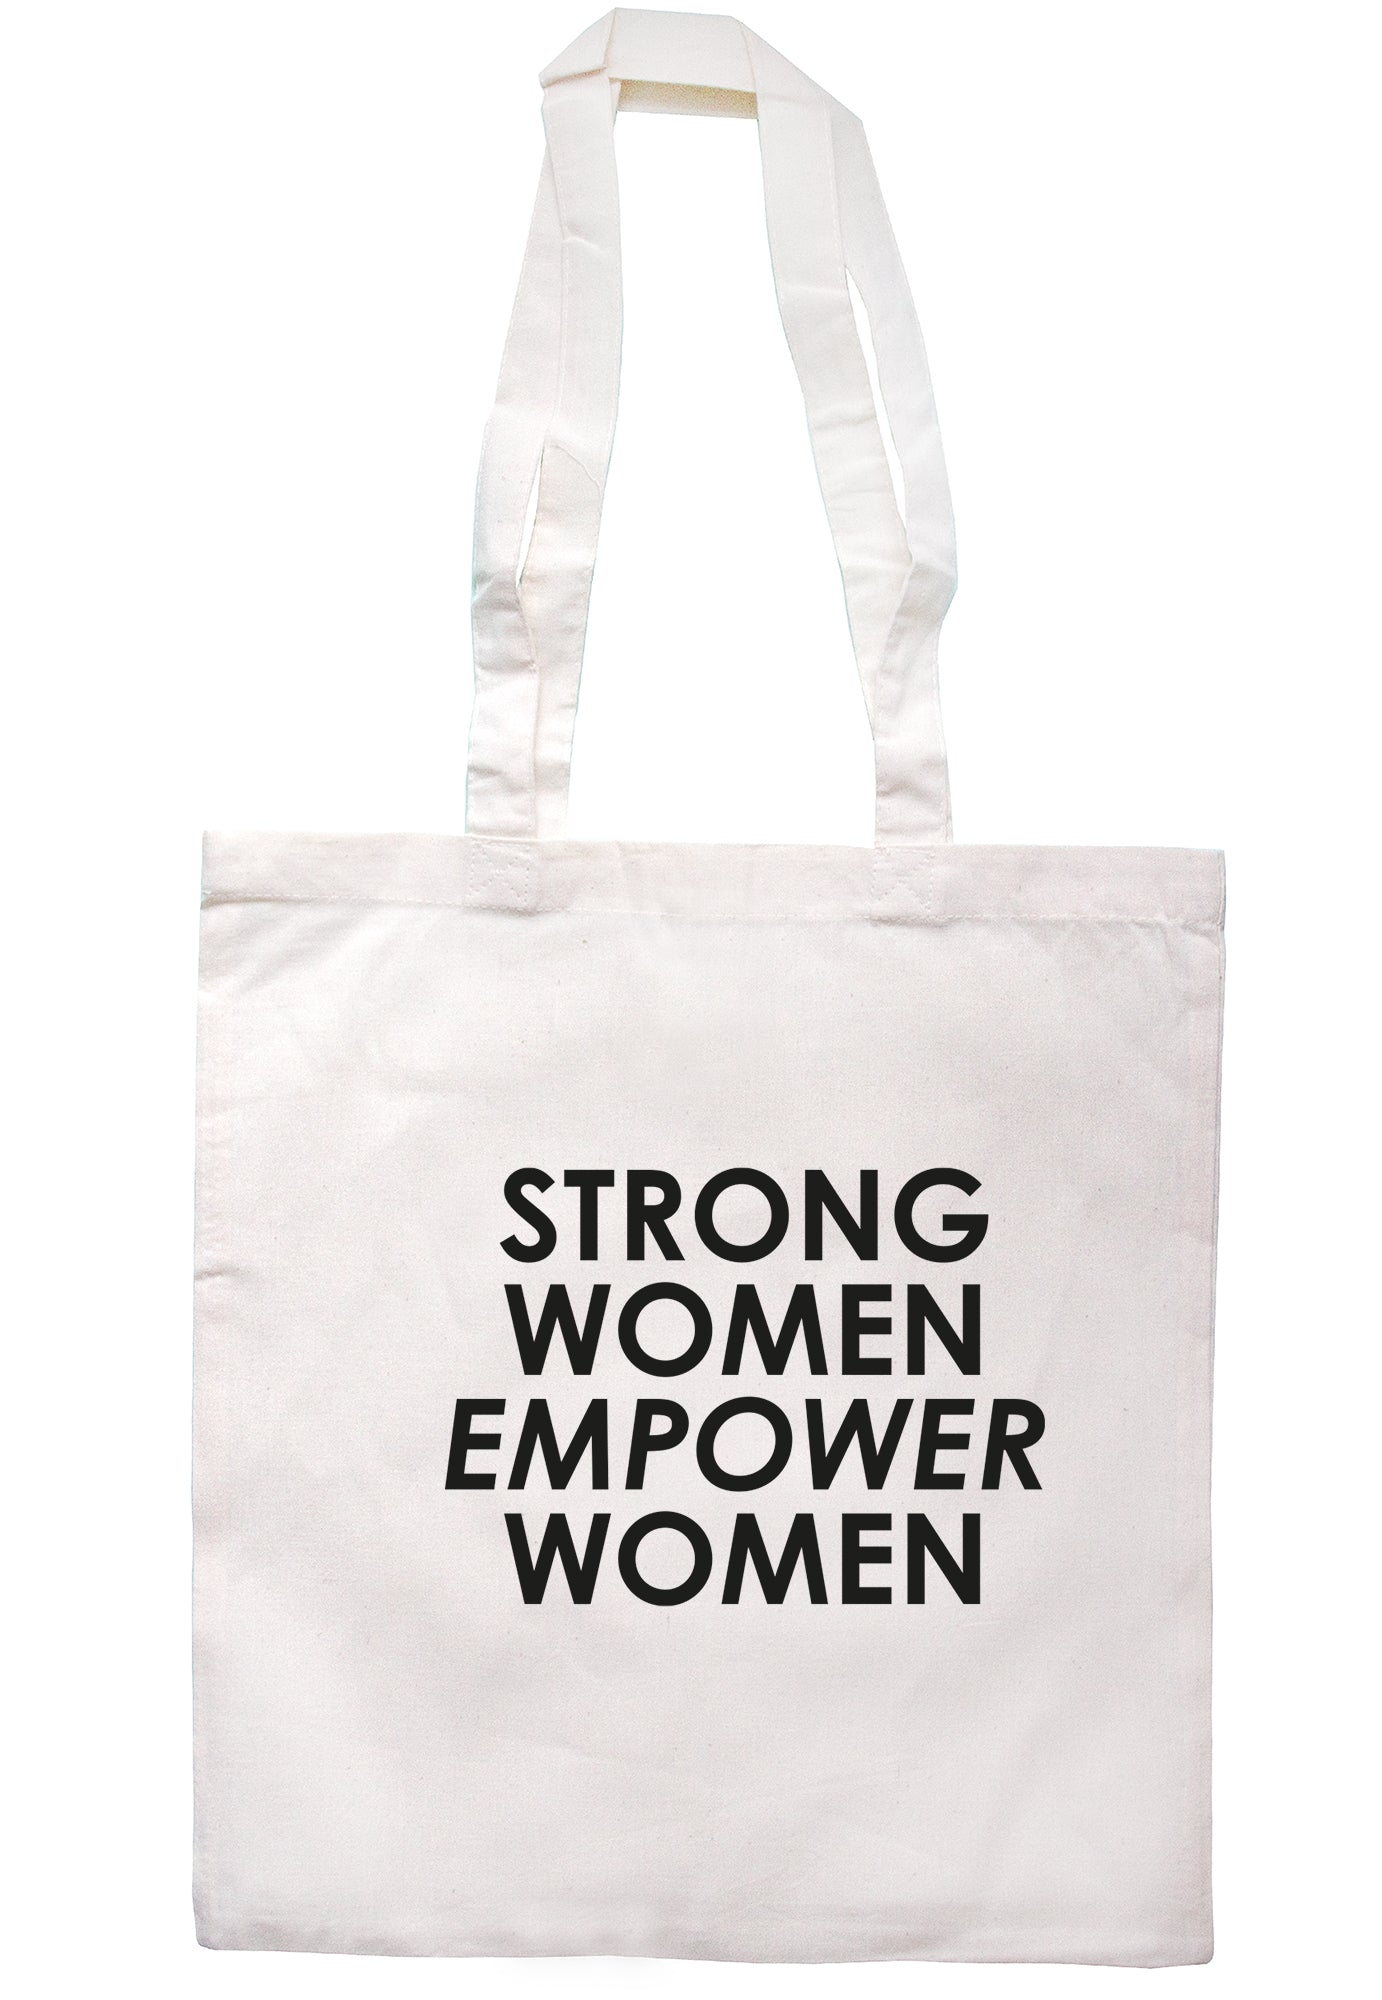 Strong Women Empower Women Tote Bag K2544 - Illustrated Identity Ltd.